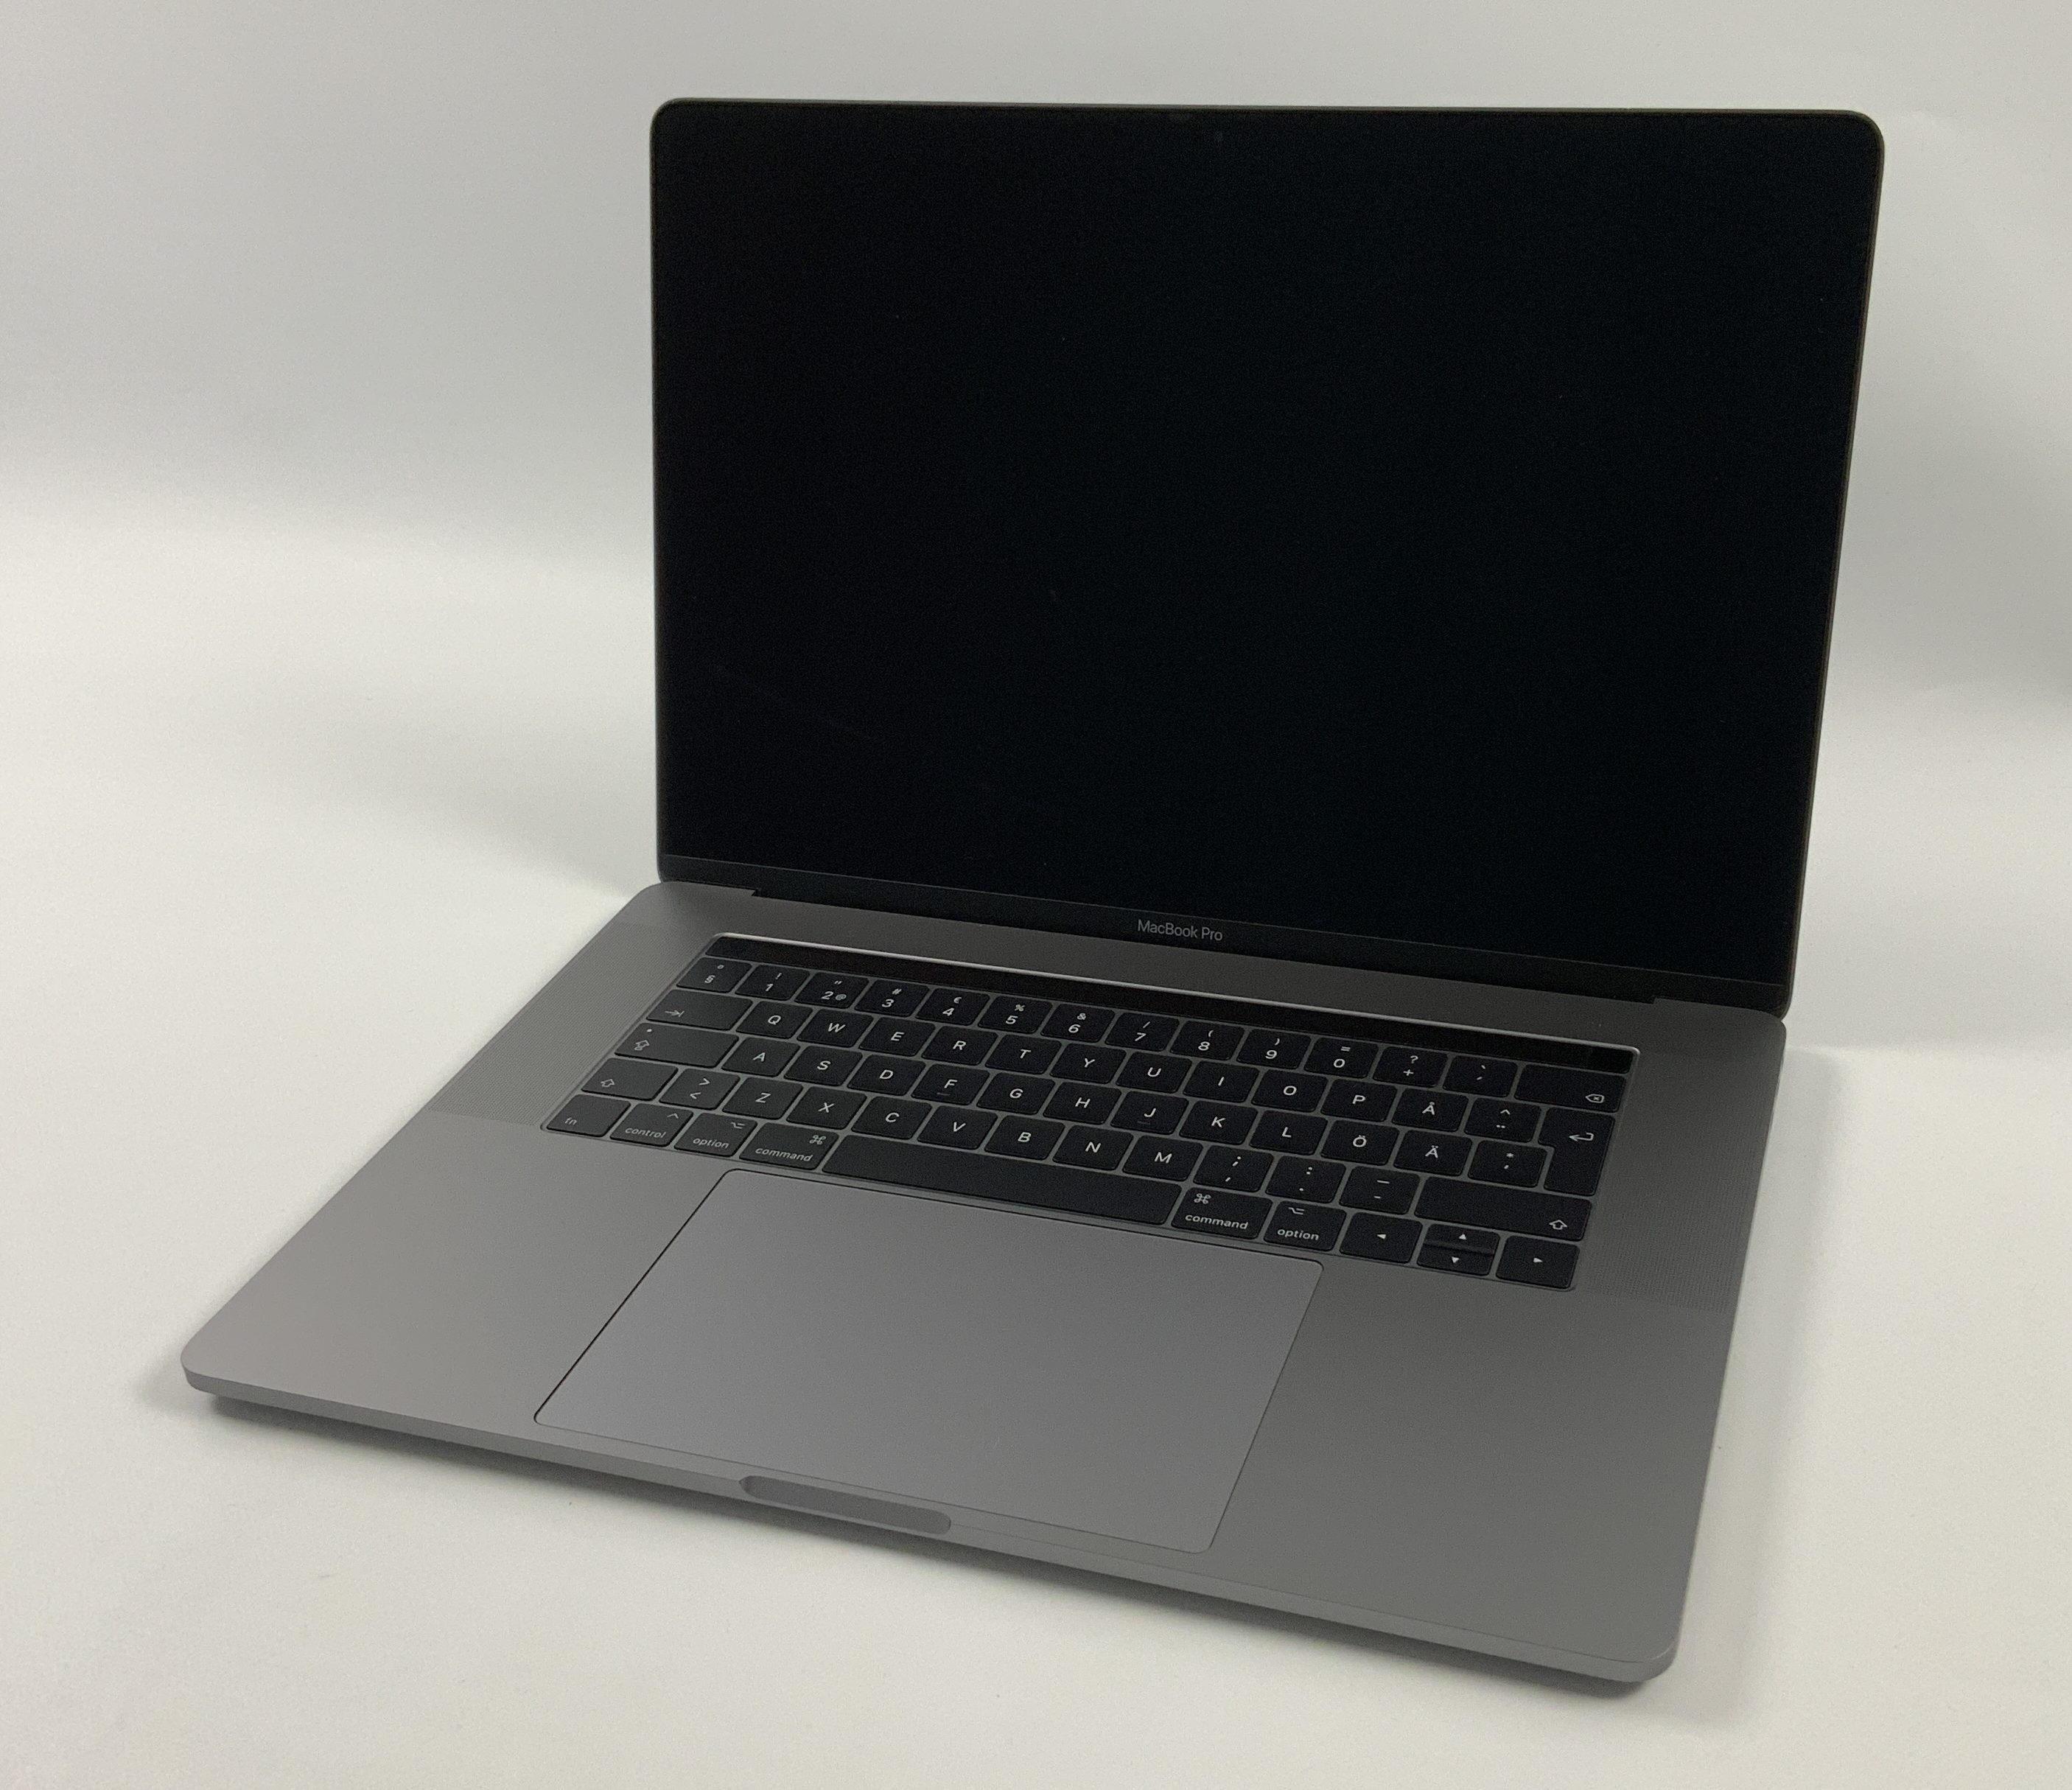 "MacBook Pro 15"" Touch Bar Late 2016 (Intel Quad-Core i7 2.6 GHz 16 GB RAM 1 TB SSD), Space Gray, Intel Quad-Core i7 2.6 GHz, 16 GB RAM, 1 TB SSD, image 1"